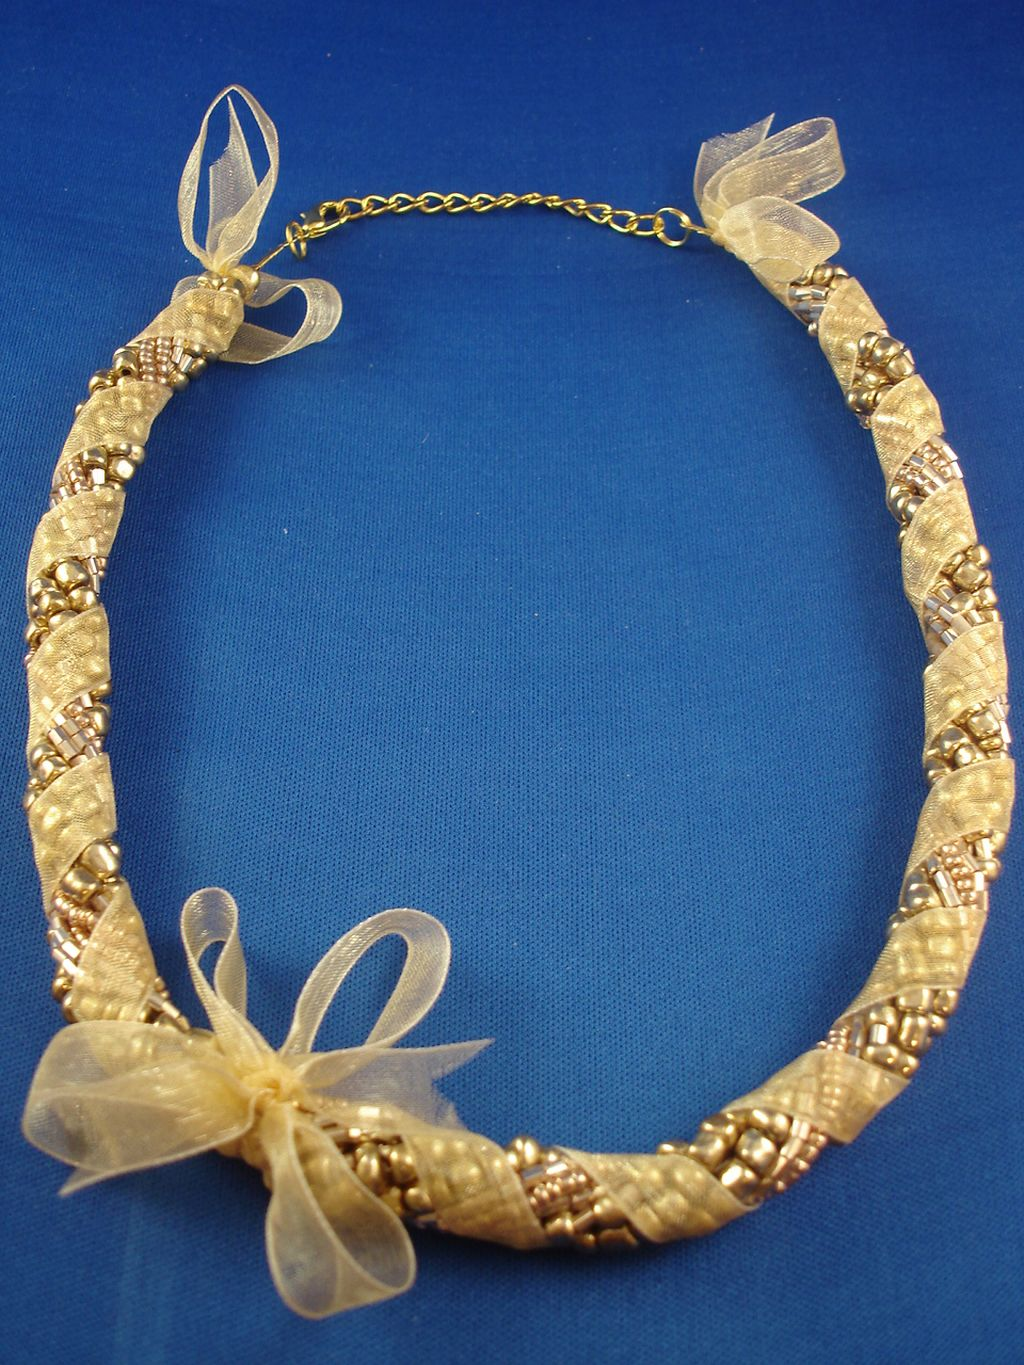 Yellow Ribbon Necklace, Eight Twisted Strings of Beads, European Fashion Jewelry